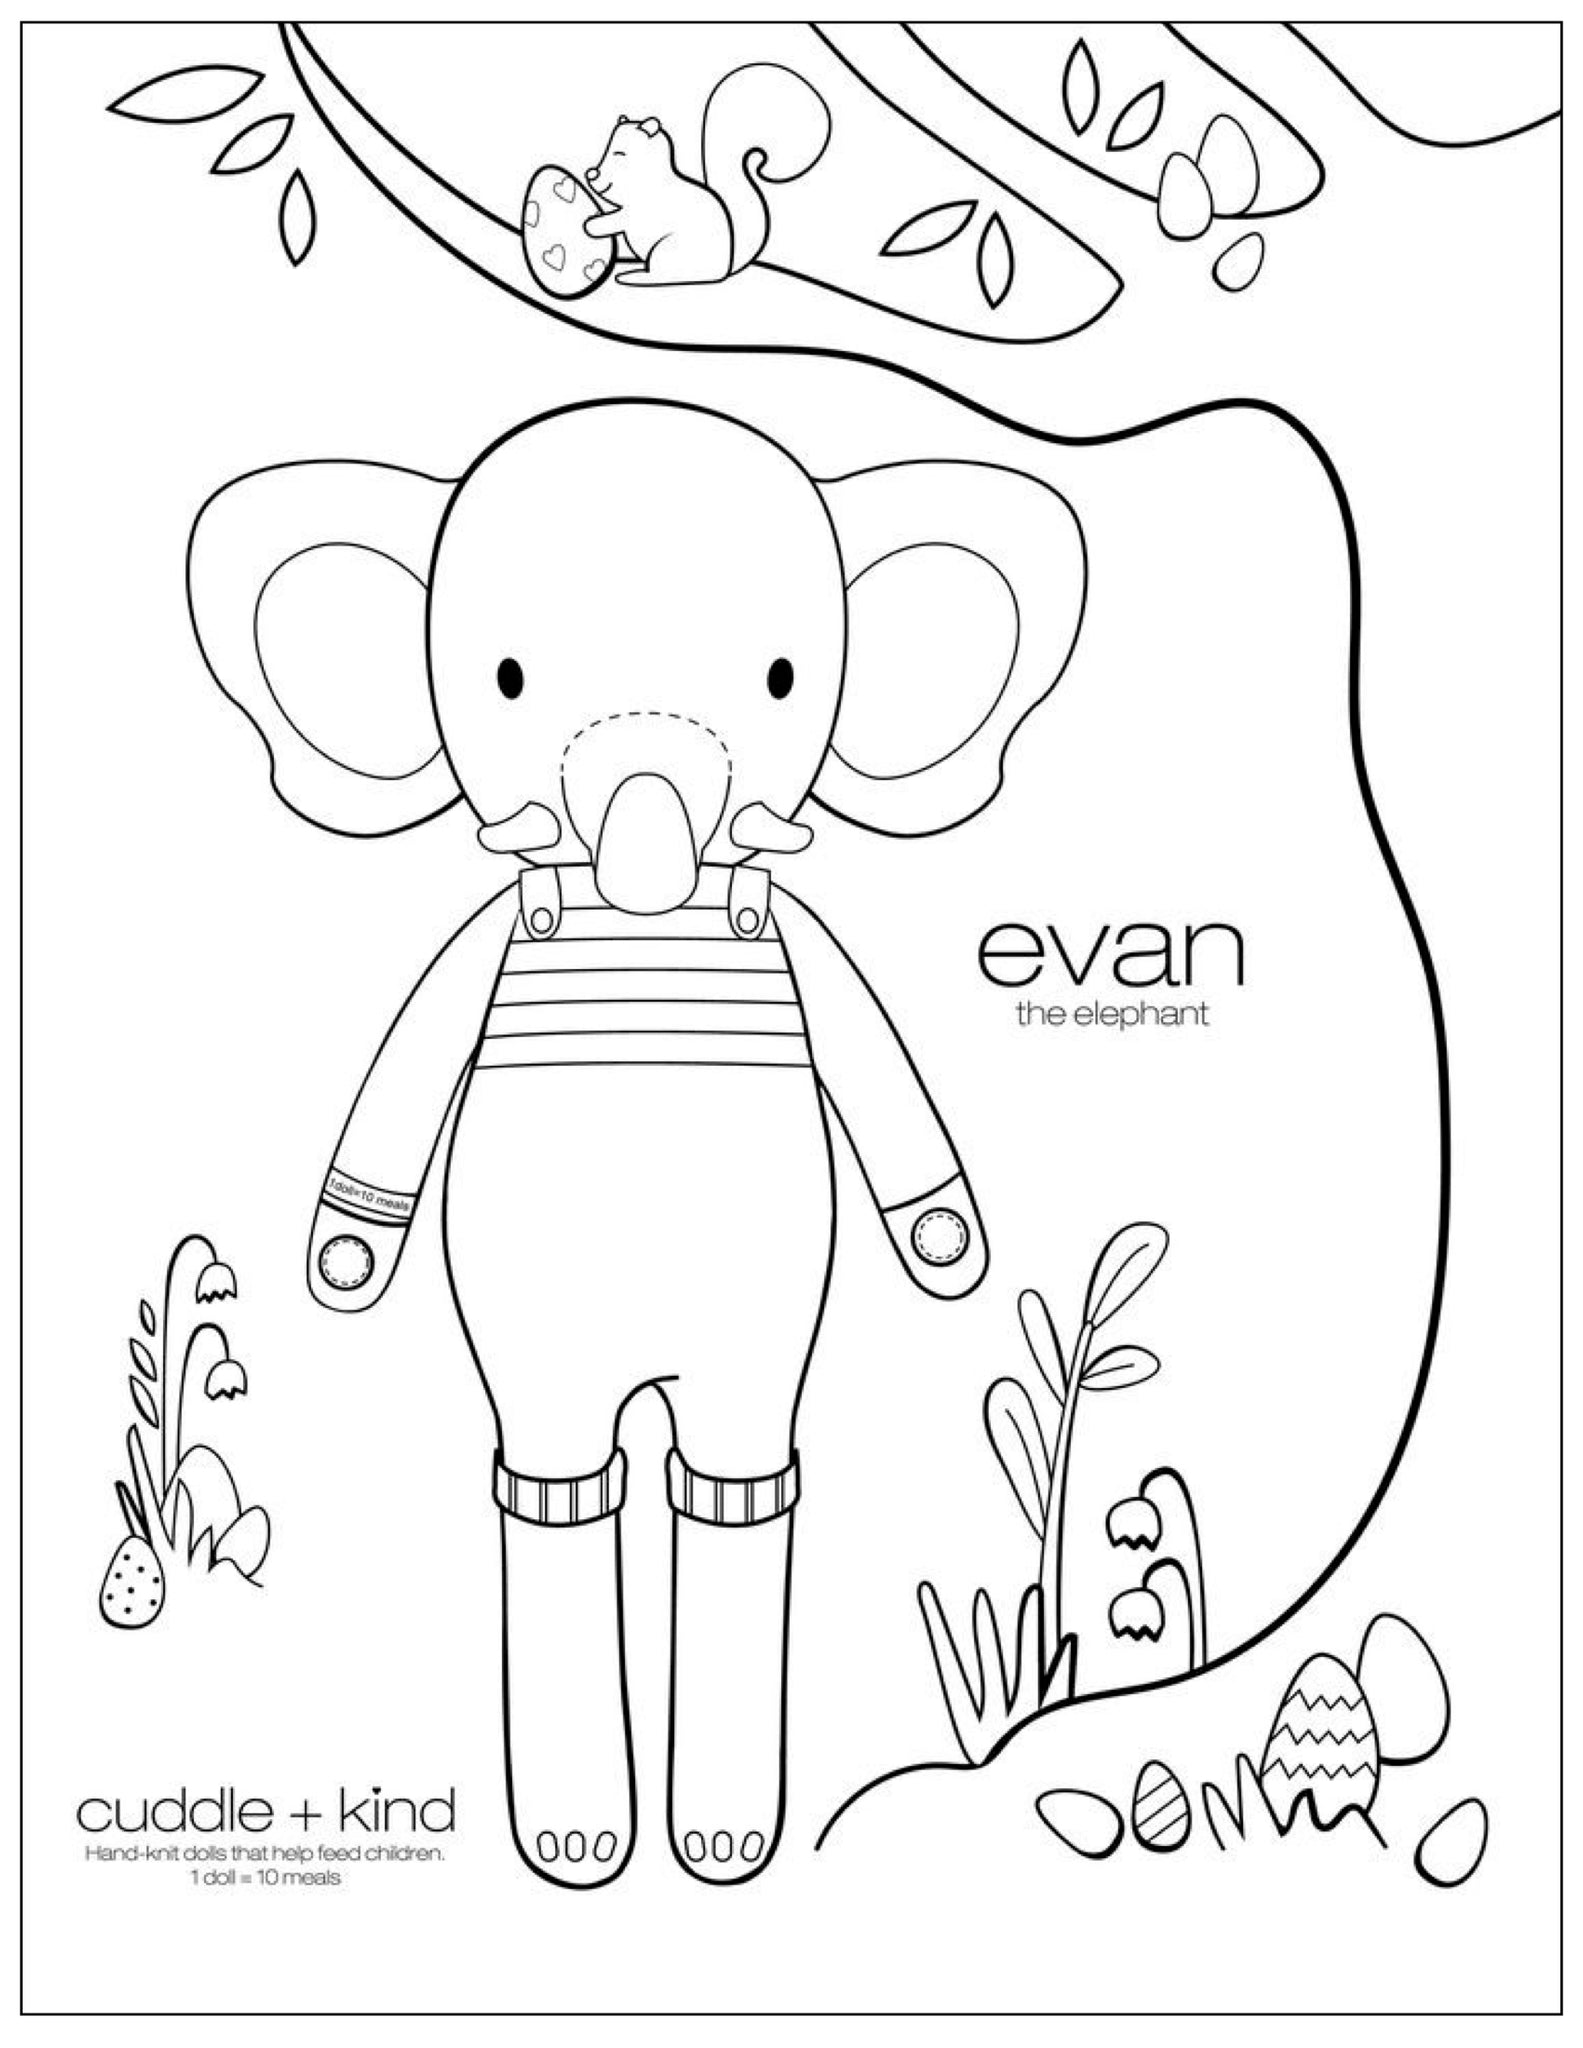 cuddle and kind evan the elephant coloring page